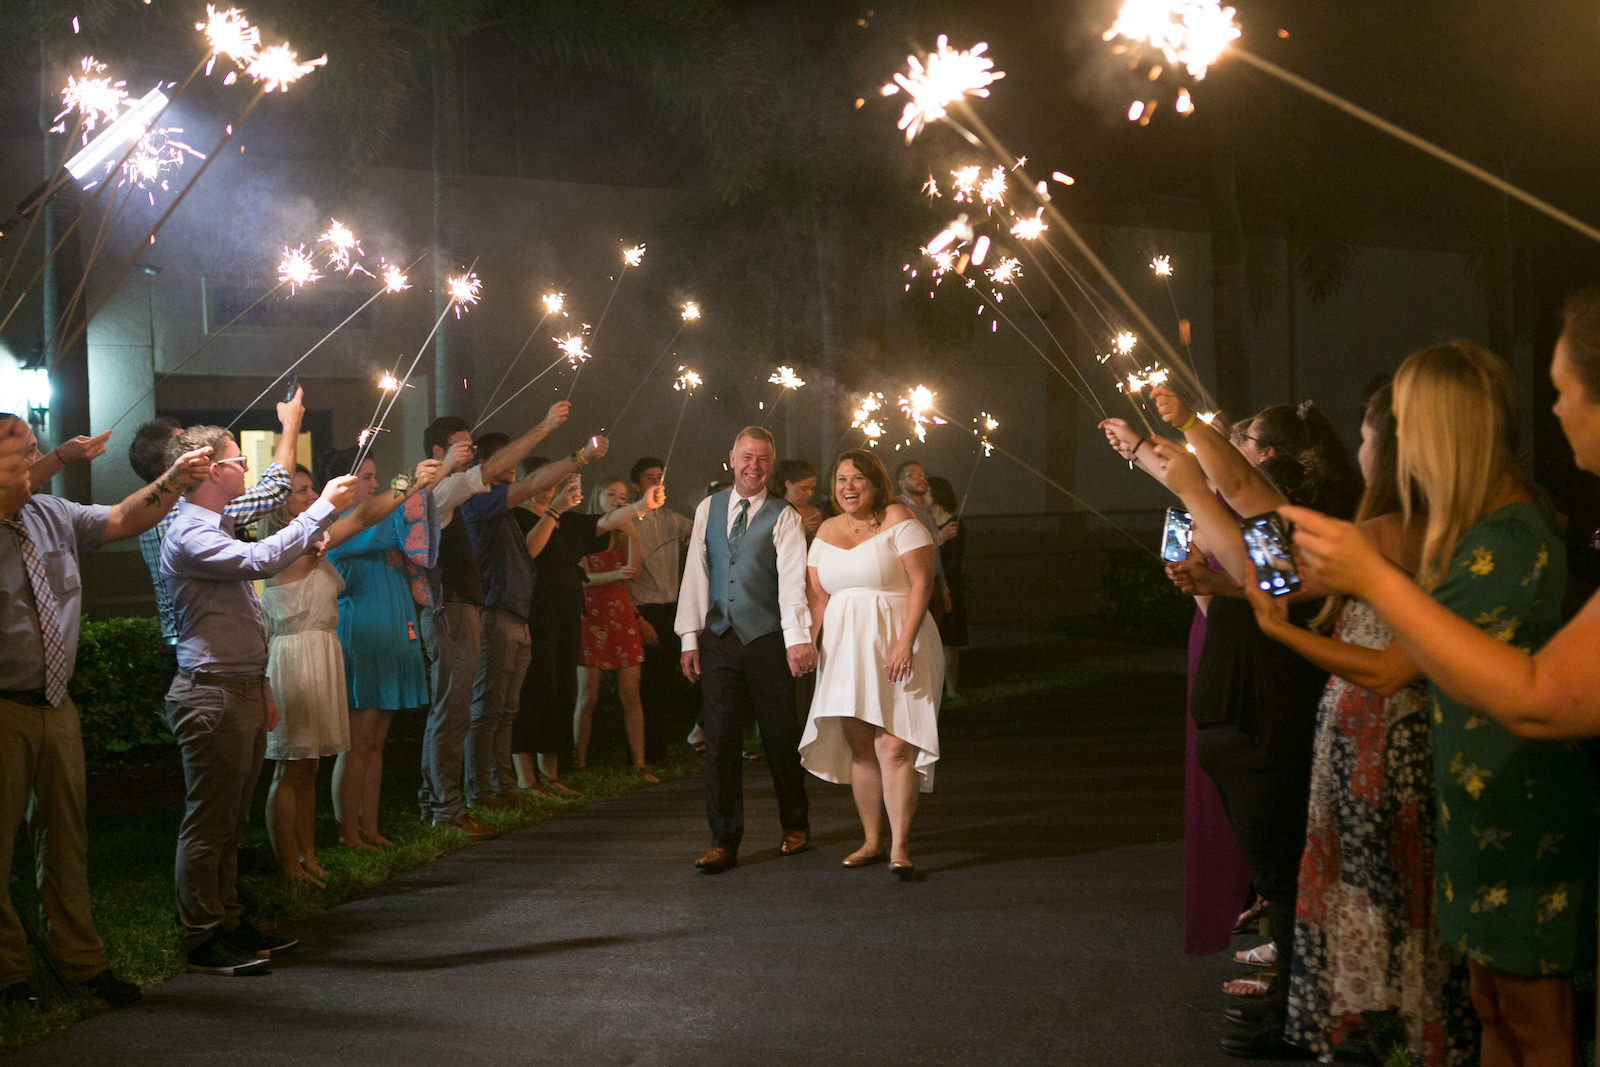 Tampa Bride and Groom Sparkler Wedding Reception Exit | Wedding Photographer Carrie Wildes Photography